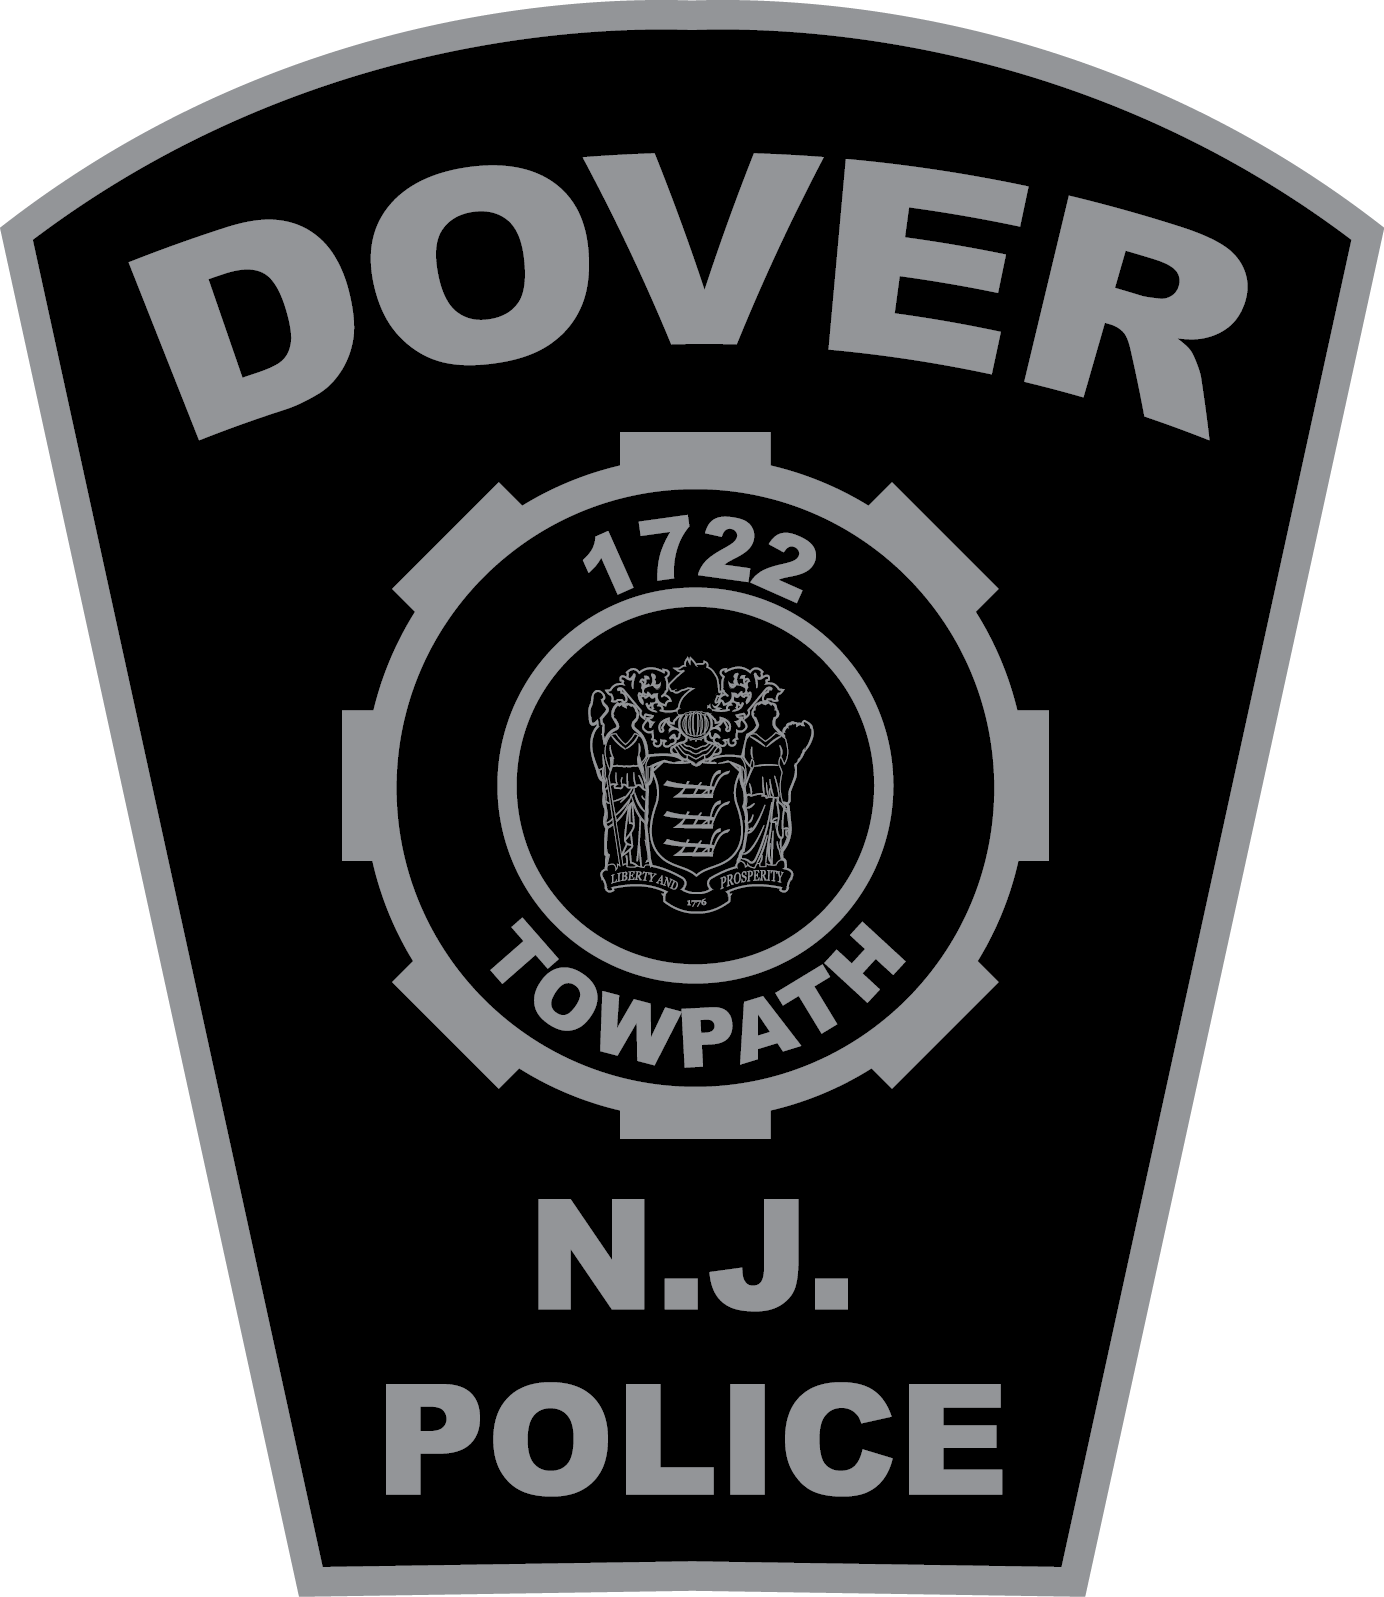 Dover Police Department, NJ